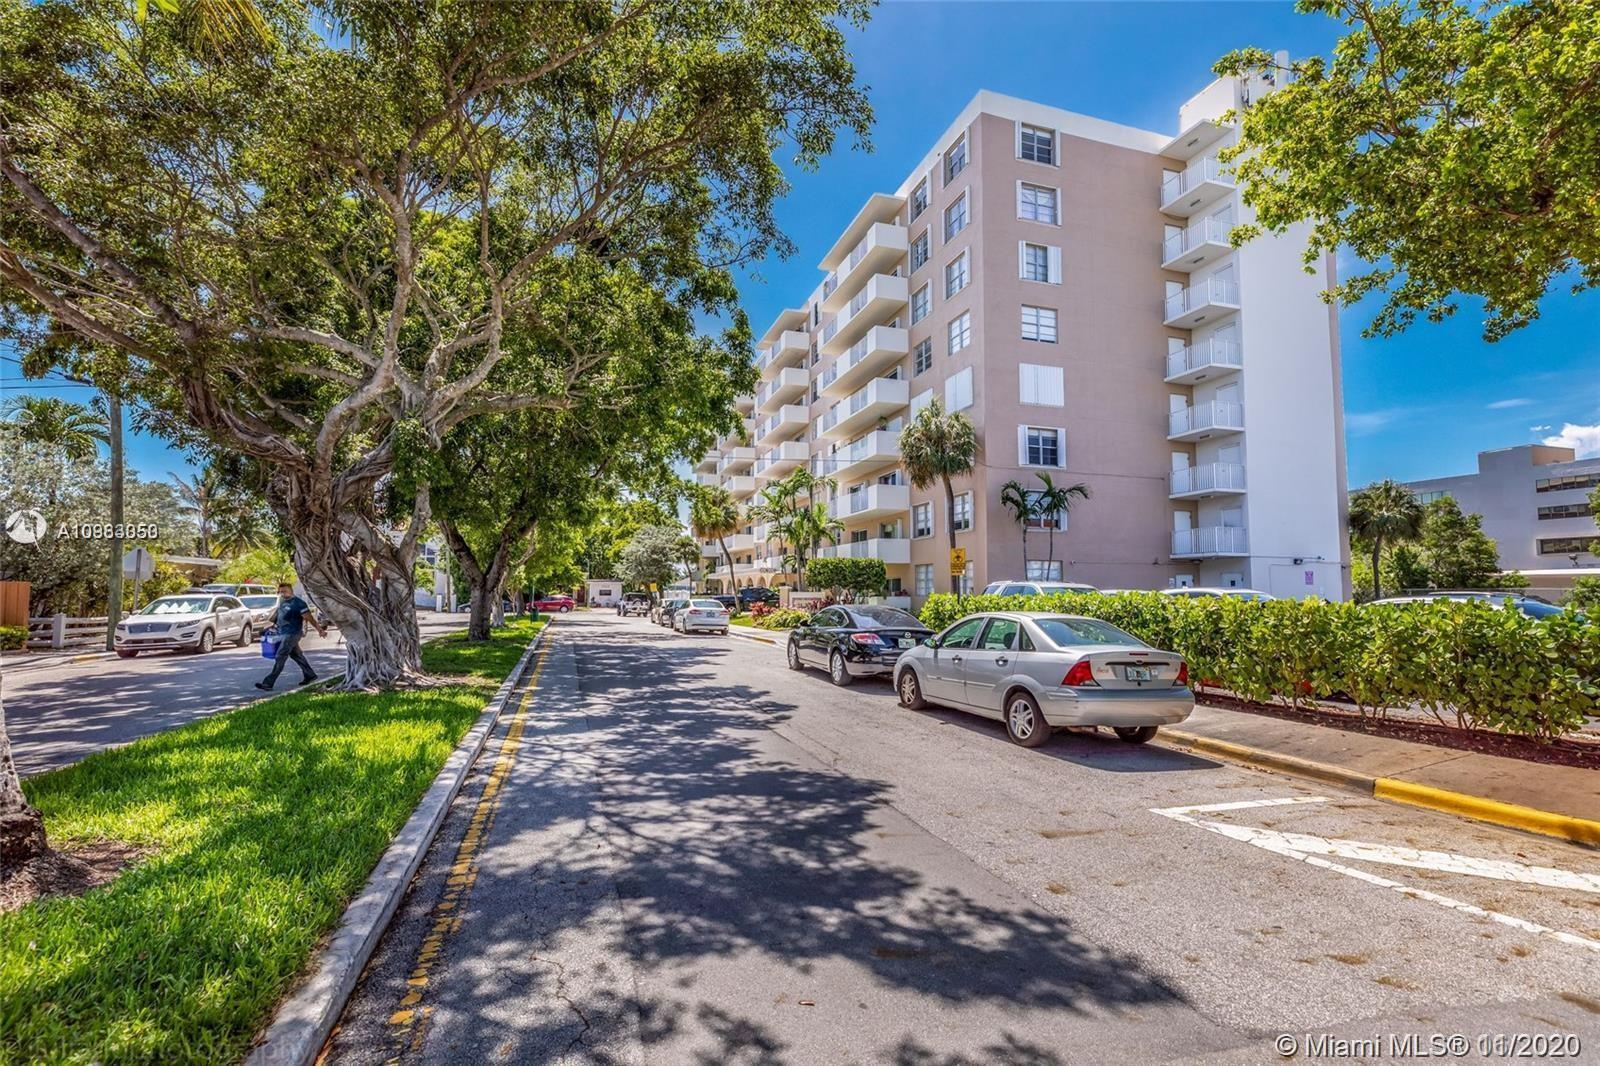 VERY SPACIOUS 1BDR/ 1 BATH, BALCONY, MINT CONDITIONS, ALL TILED, STAINLESS STEEL APPLIANCES, HUGE CL